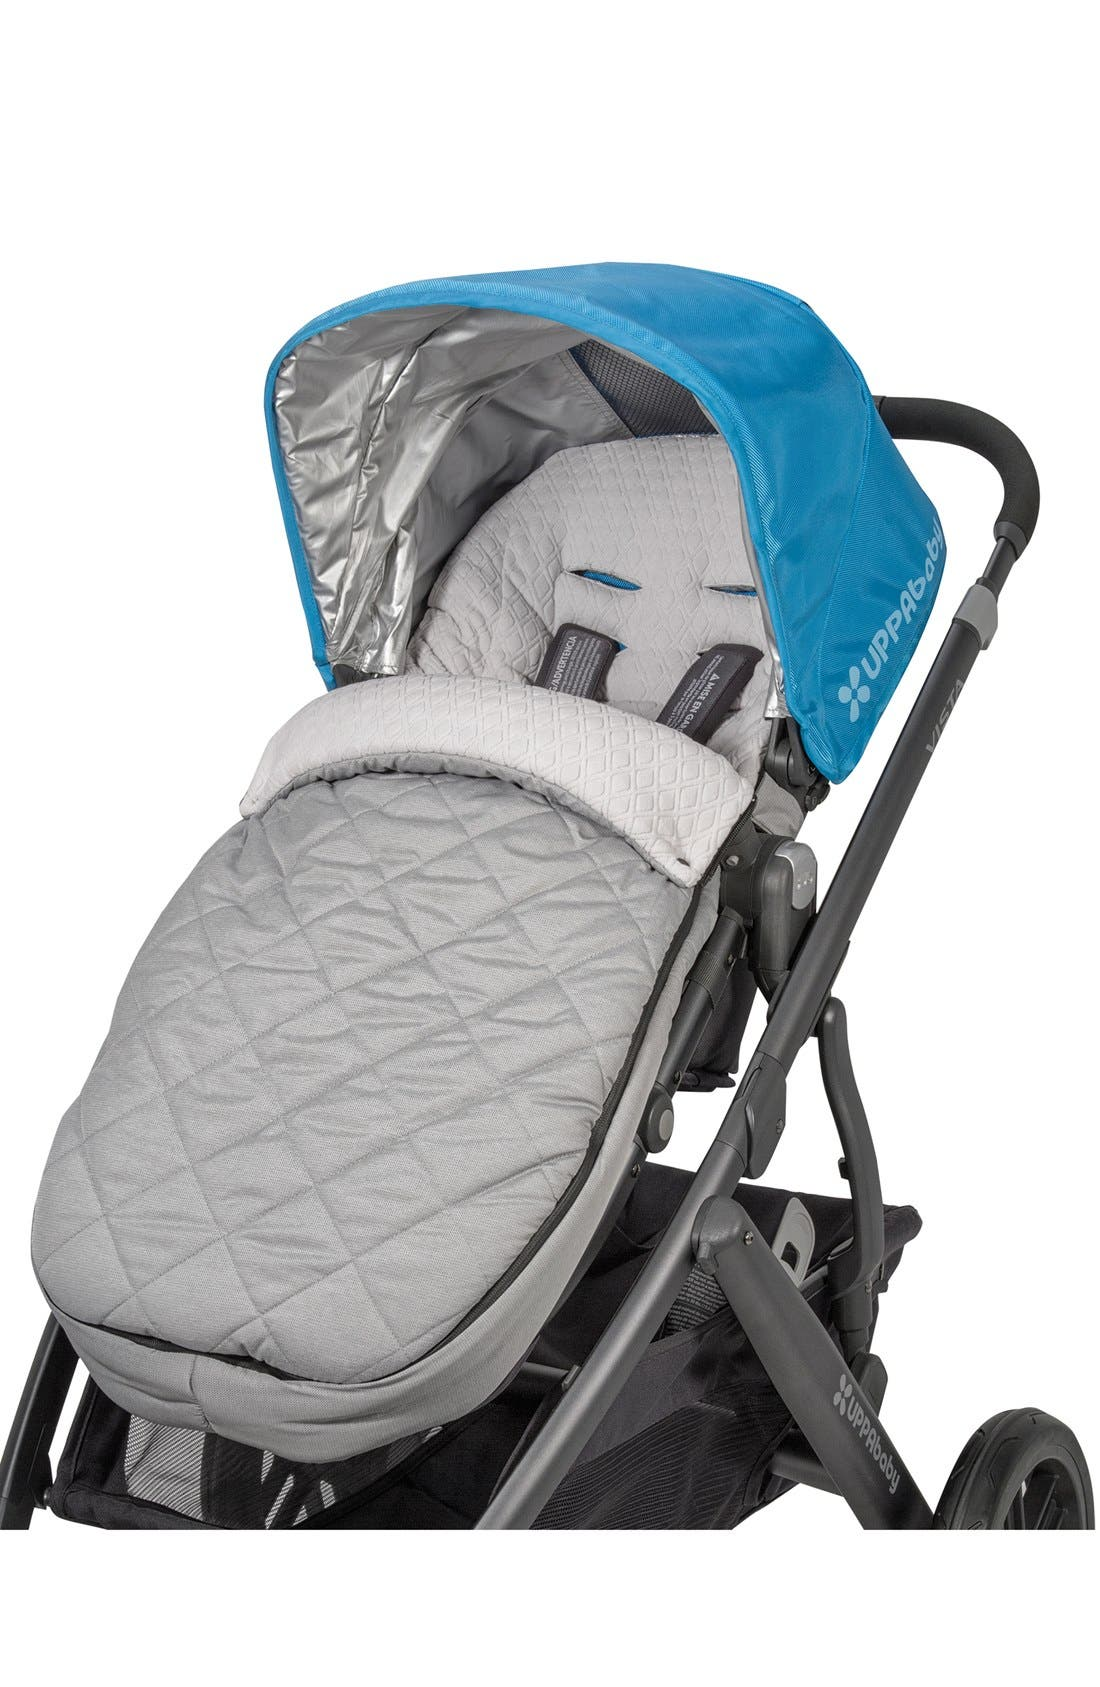 Alternate Image 1 Selected - UPPAbaby 'CozyGanoosh - Pascal' Water Resistant & Insulated Stroller Footmuff